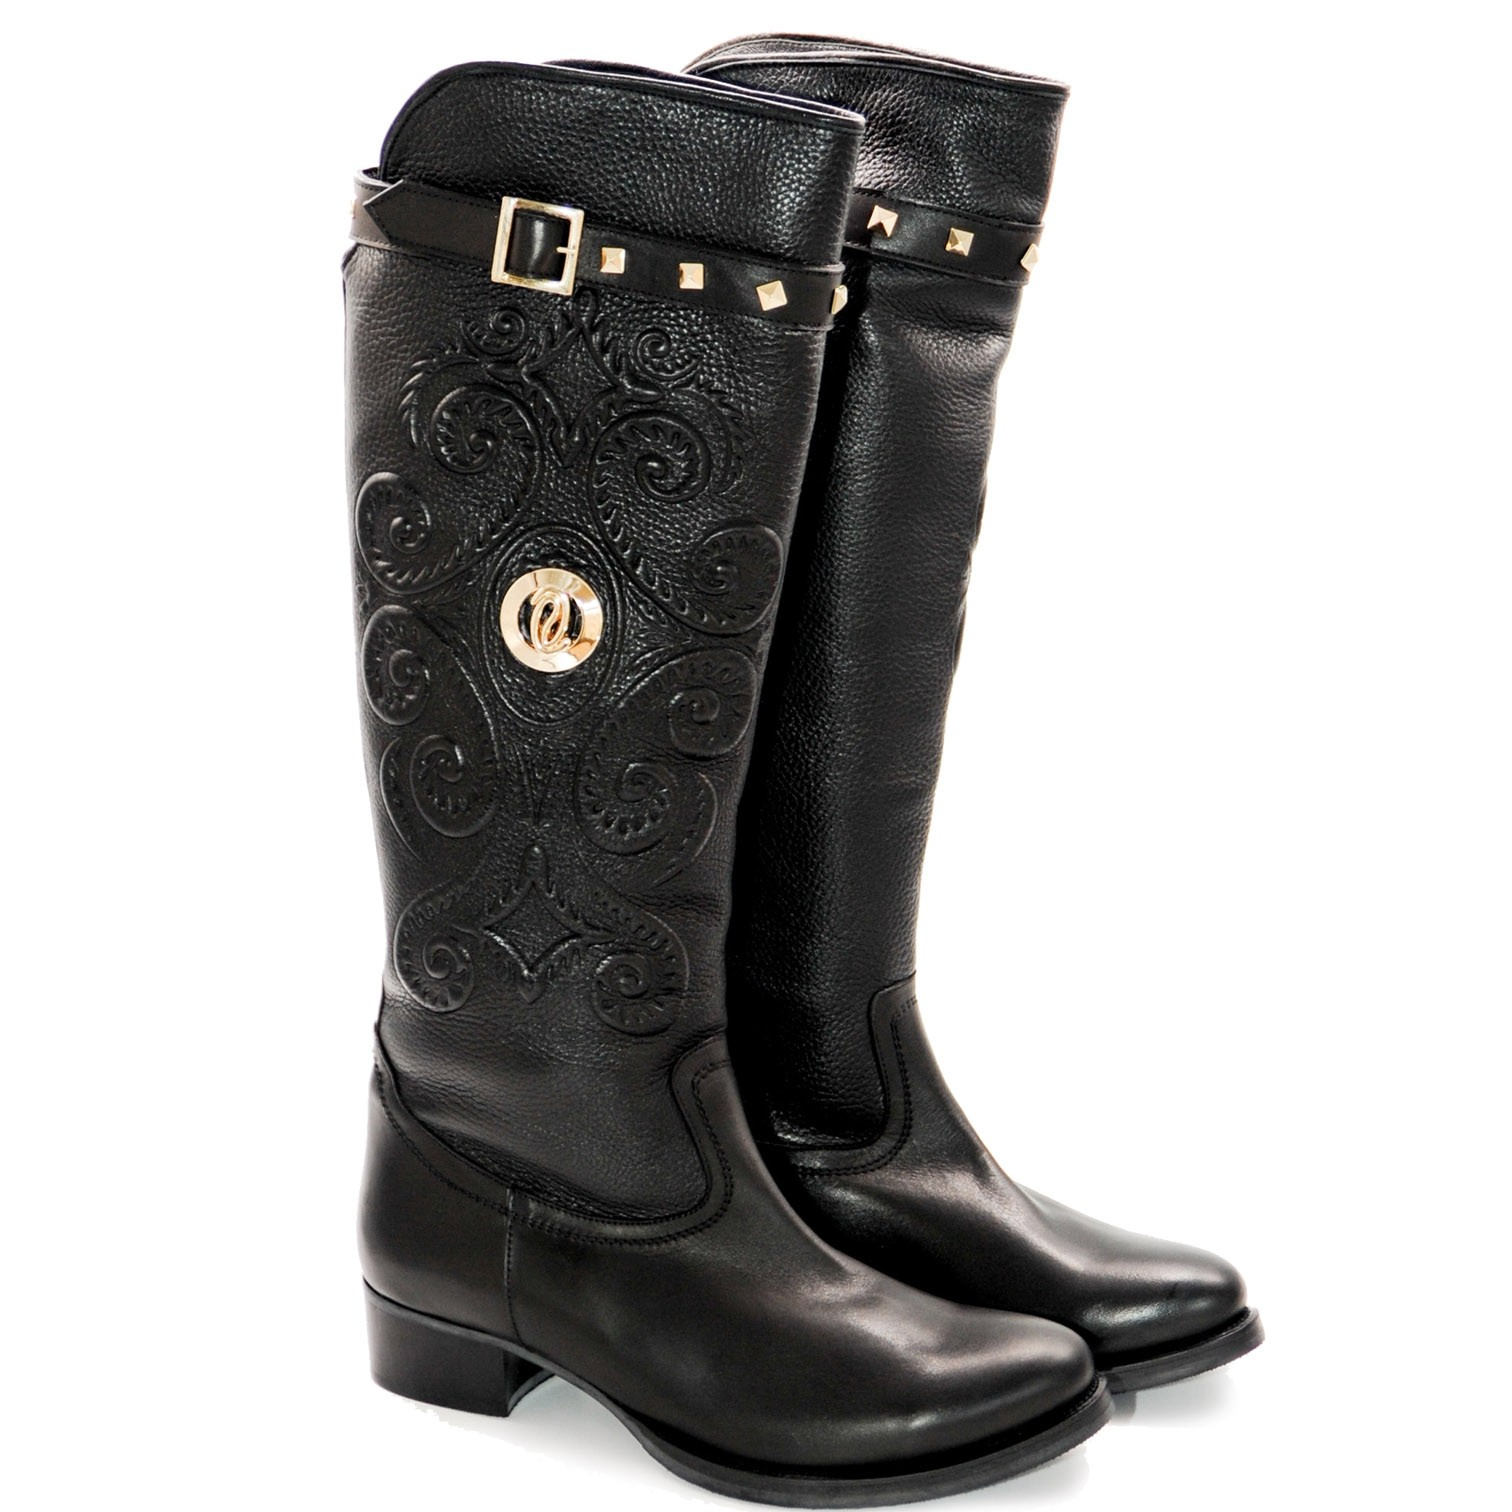 Sturdy Cowboy Style Leather Full Boot with Outer Paisley Pattern